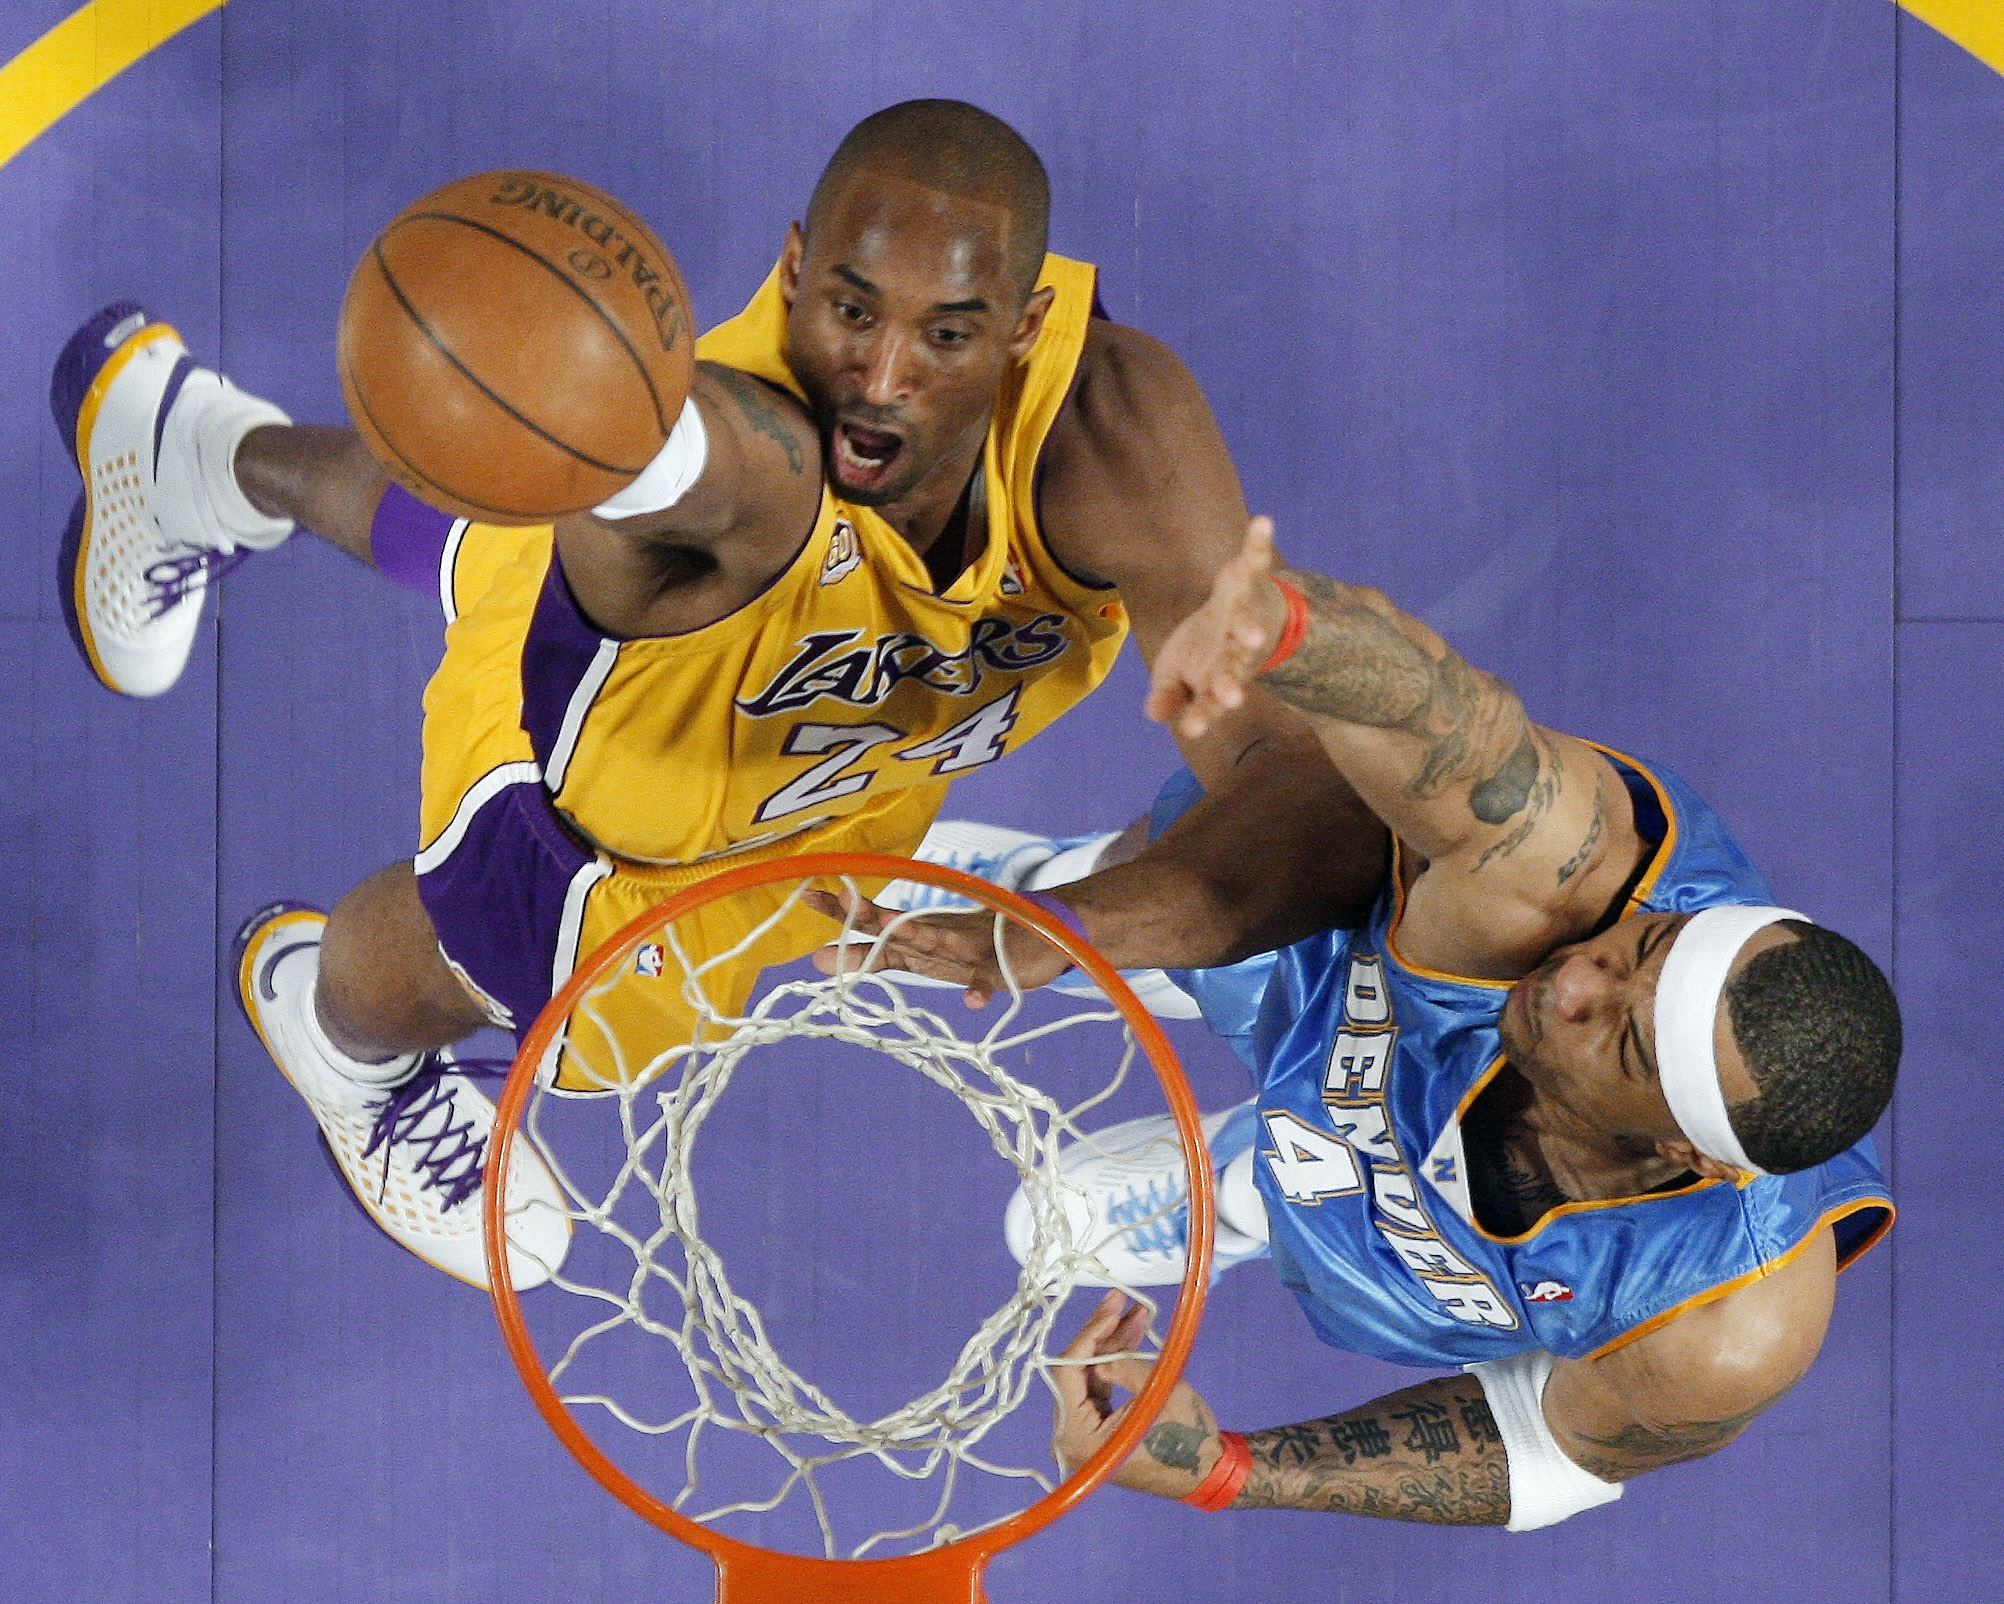 f52bb5fdd26c Kobe Bryant s earning power is even more spectacular than his dunks ...